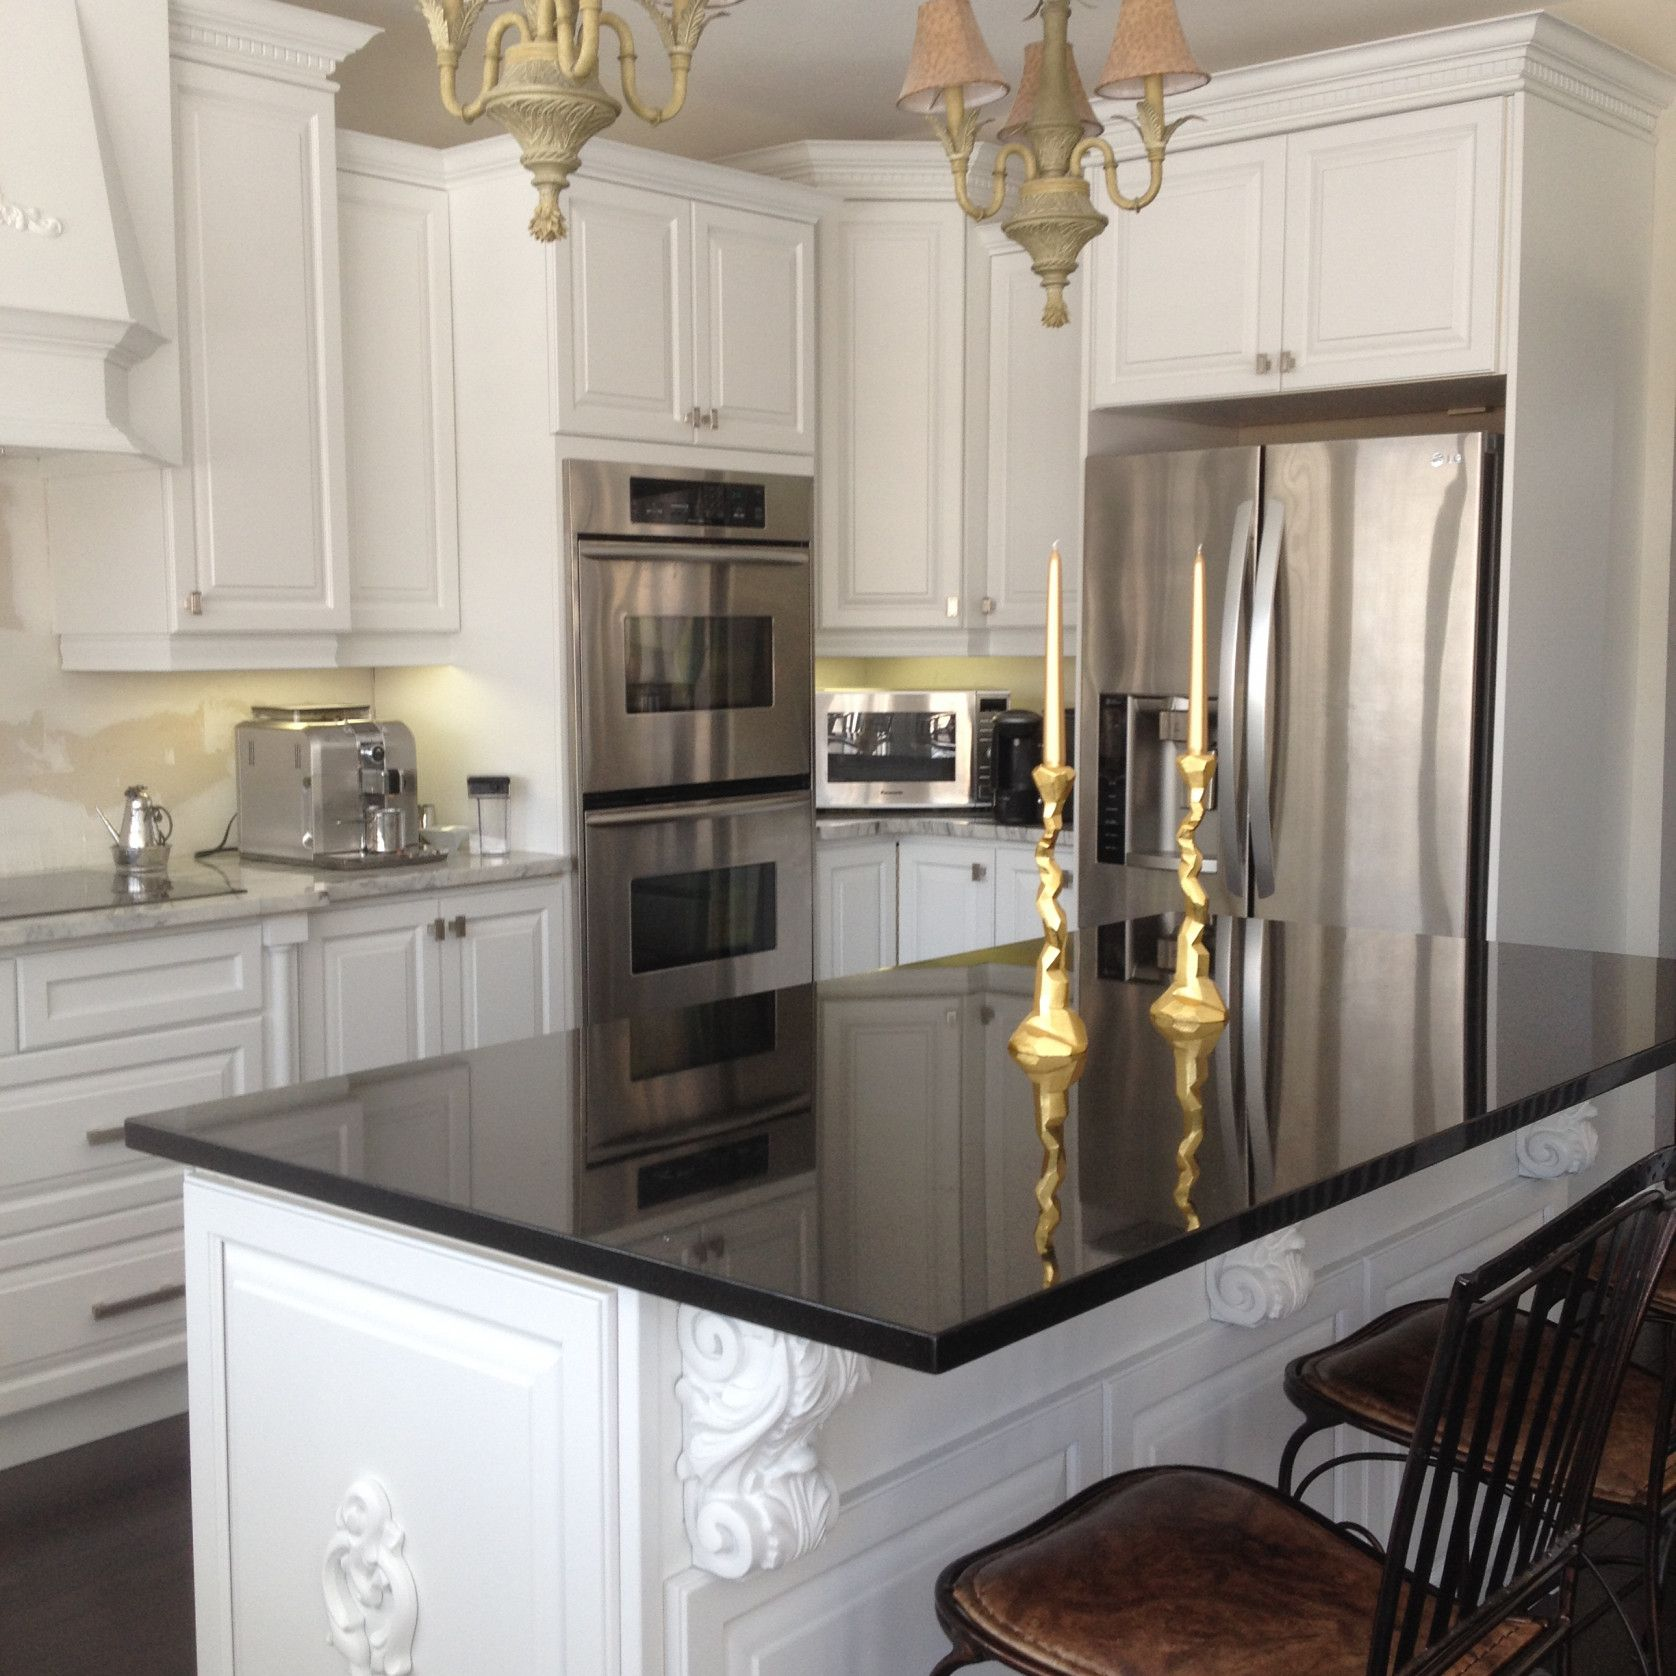 2019 professionally painting kitchen cabinets apartment kitchen rh pinterest com professionally painted kitchen cabinets before and after professional spray paint kitchen cabinets